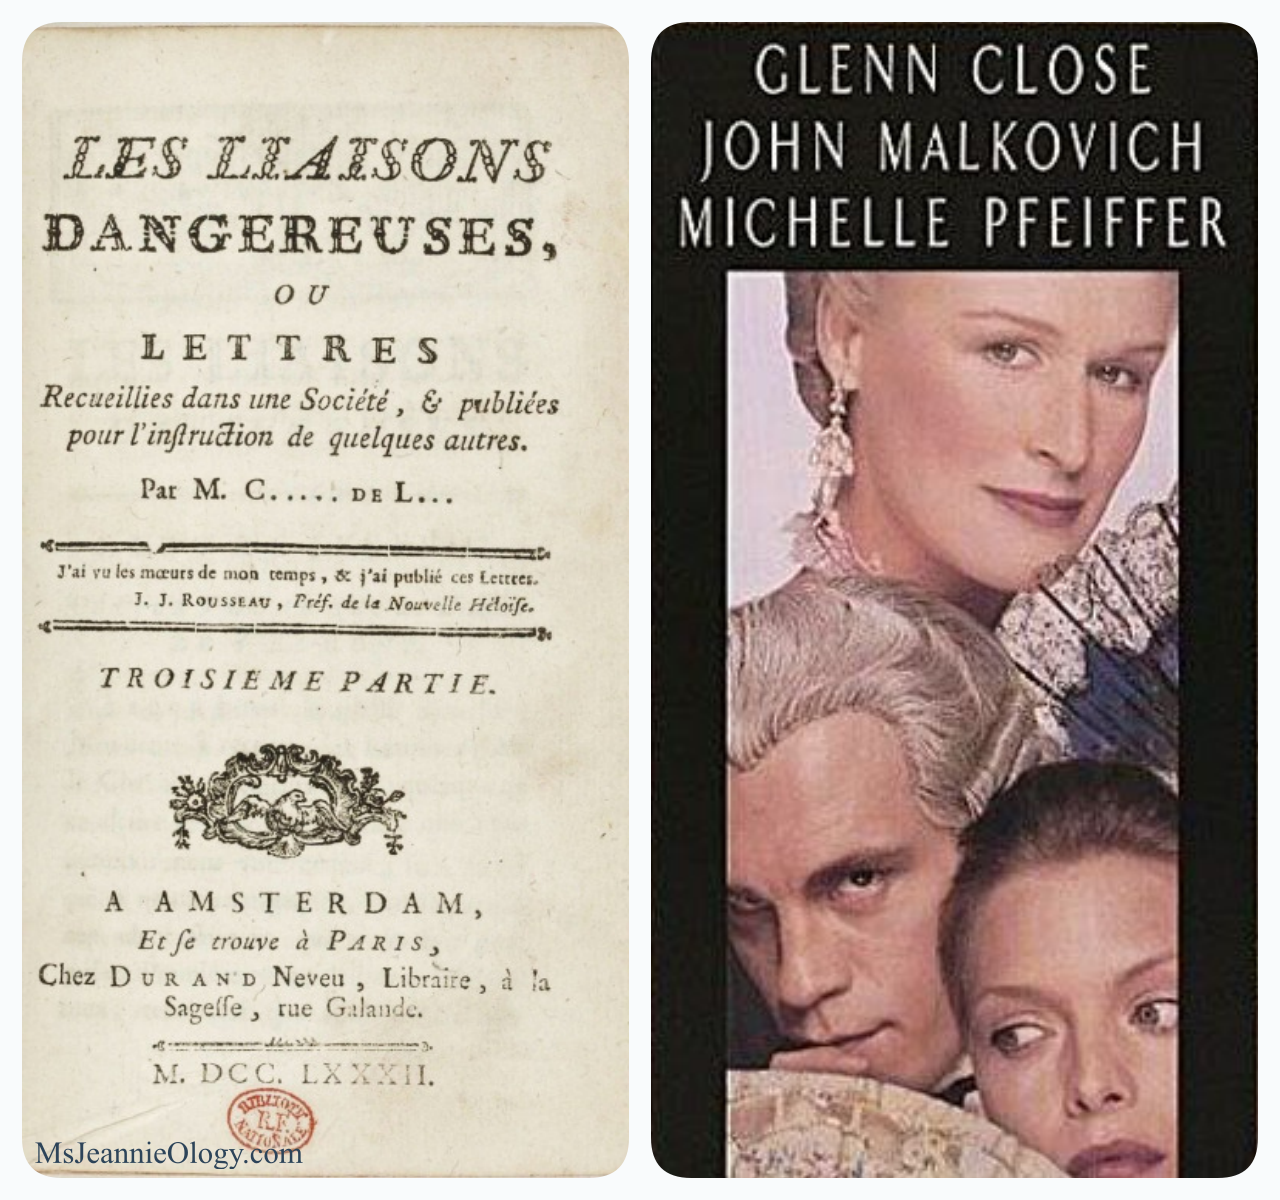 In 1782 French author Pierre Choderlos de Laclos wrote Les Liaisons Danger. Just under 200 years later, the movie Dangerous Liasiasons premiered starring Glenn Close